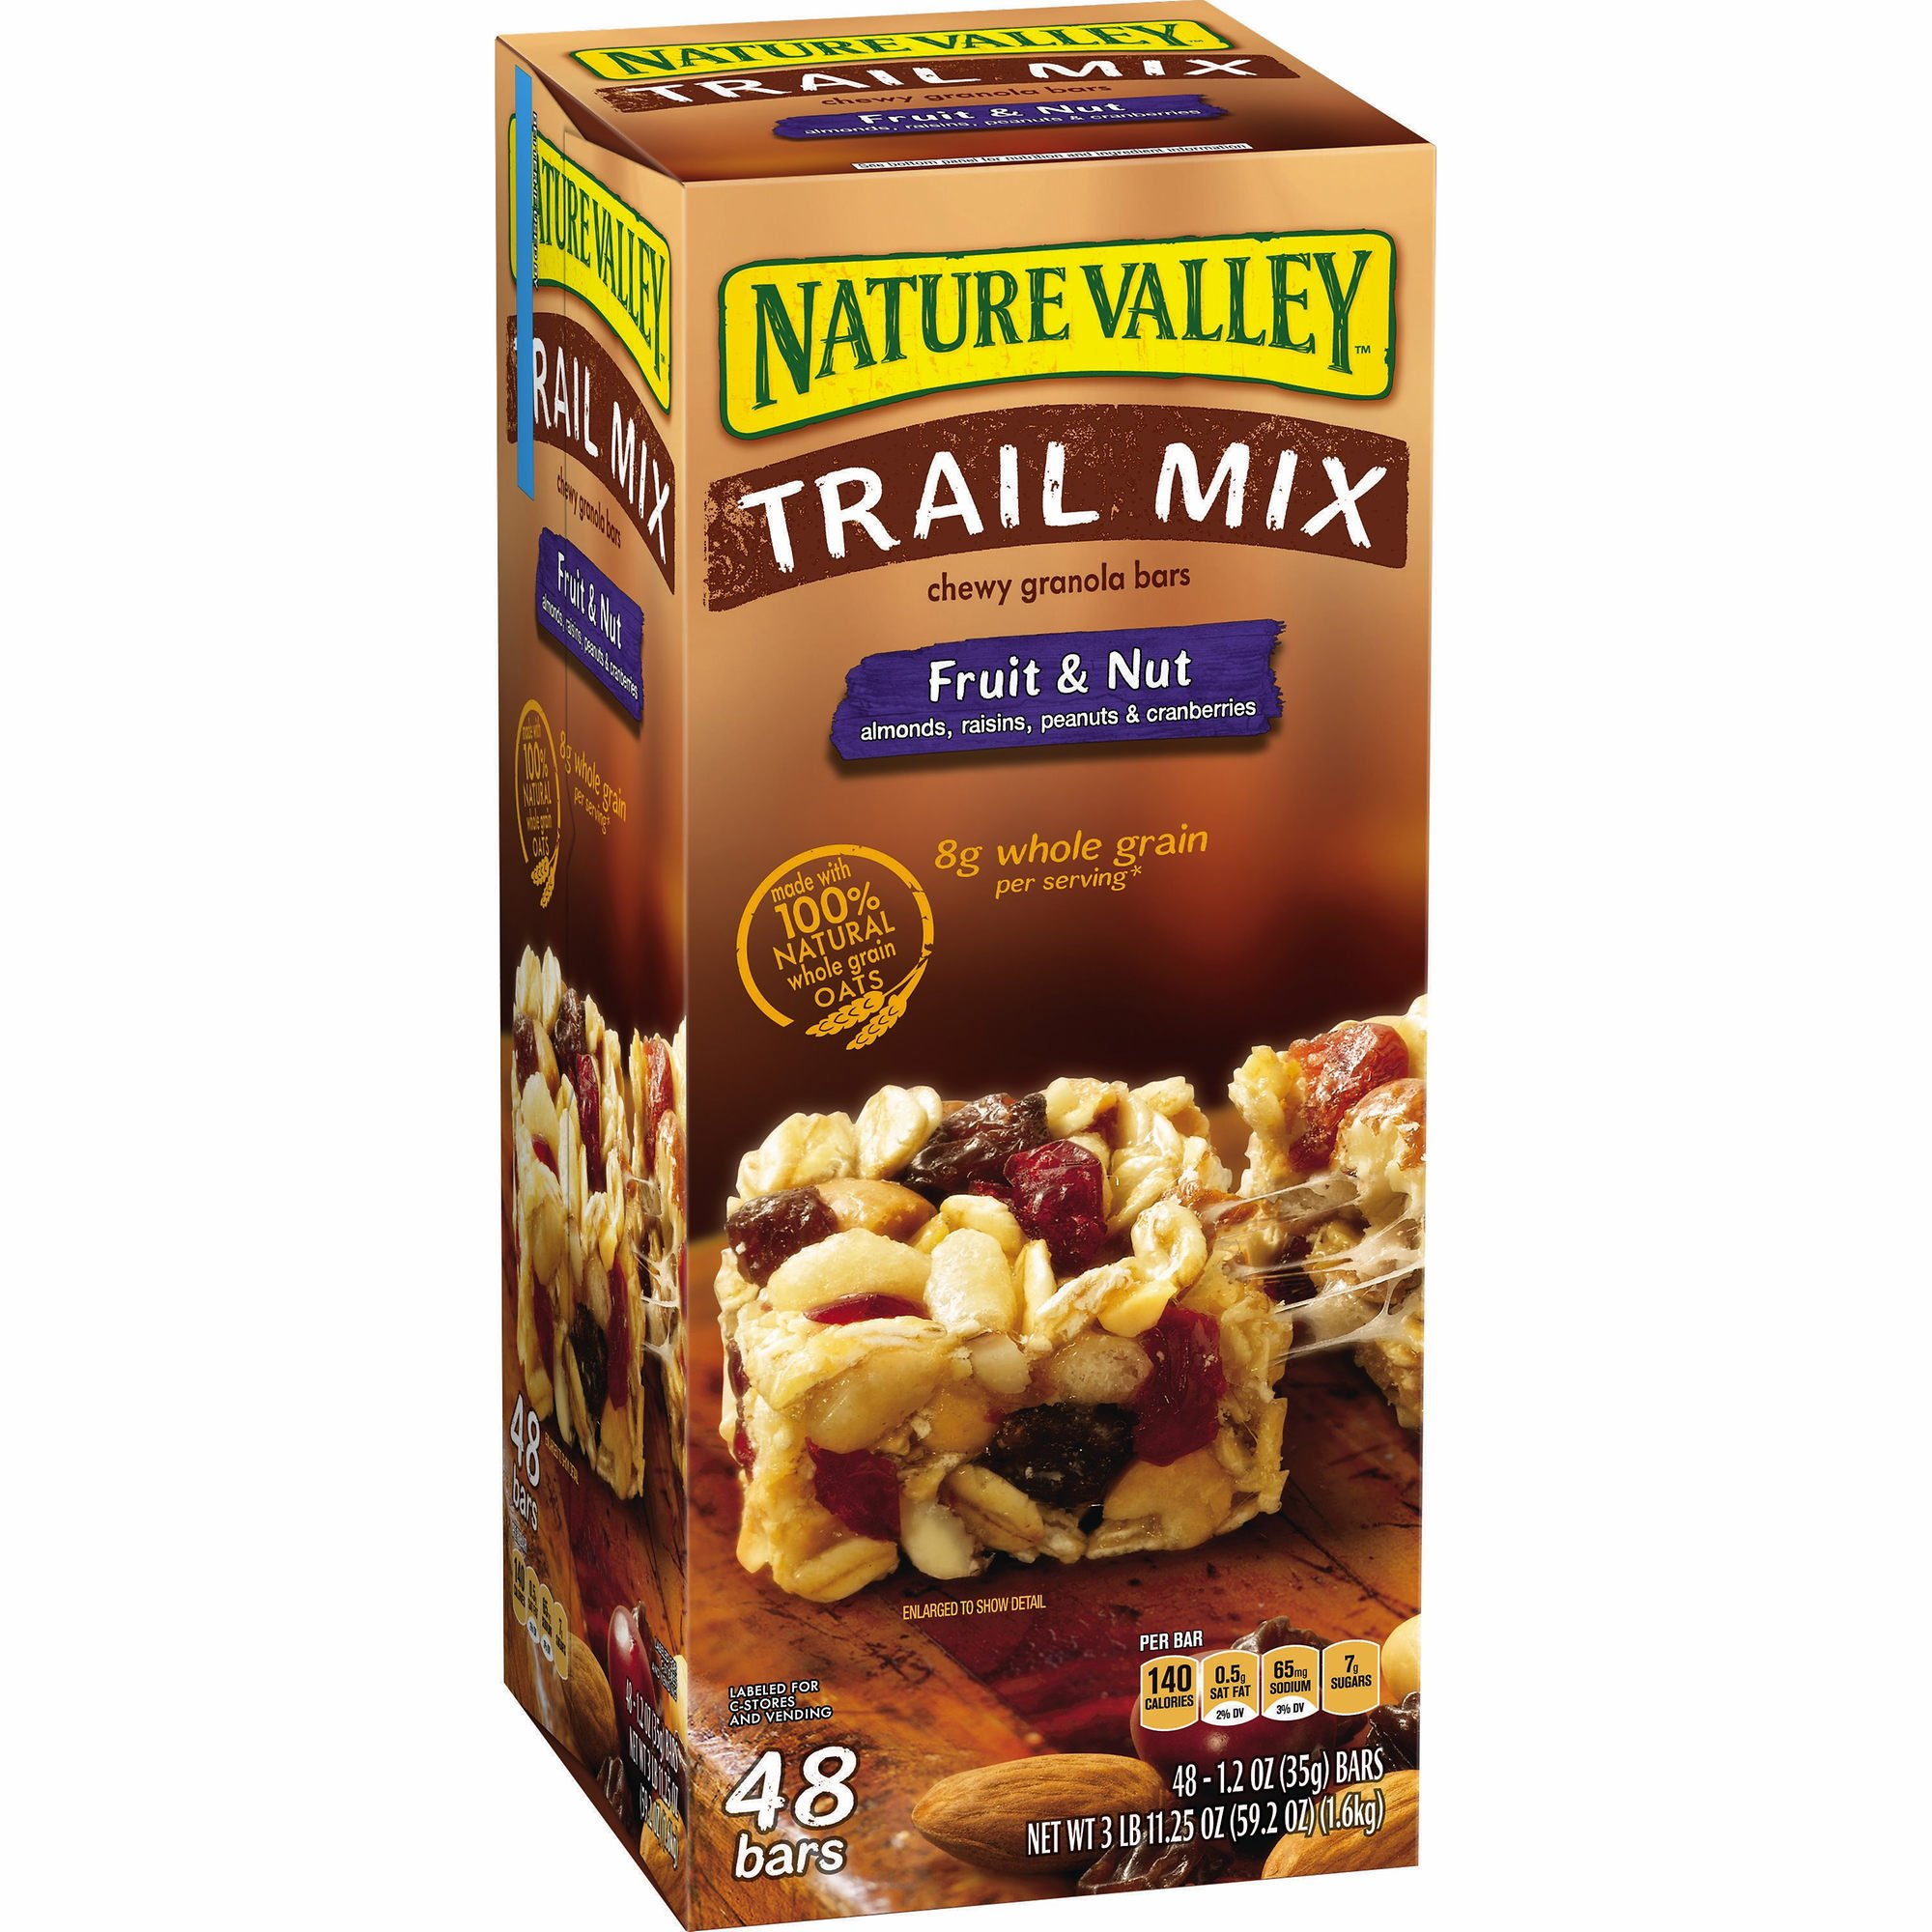 Nature Valley Fruit & Nut Trail Mix Chewy Granola Bars, 48 ct. (pack of 6) by Nature Valley (Image #1)